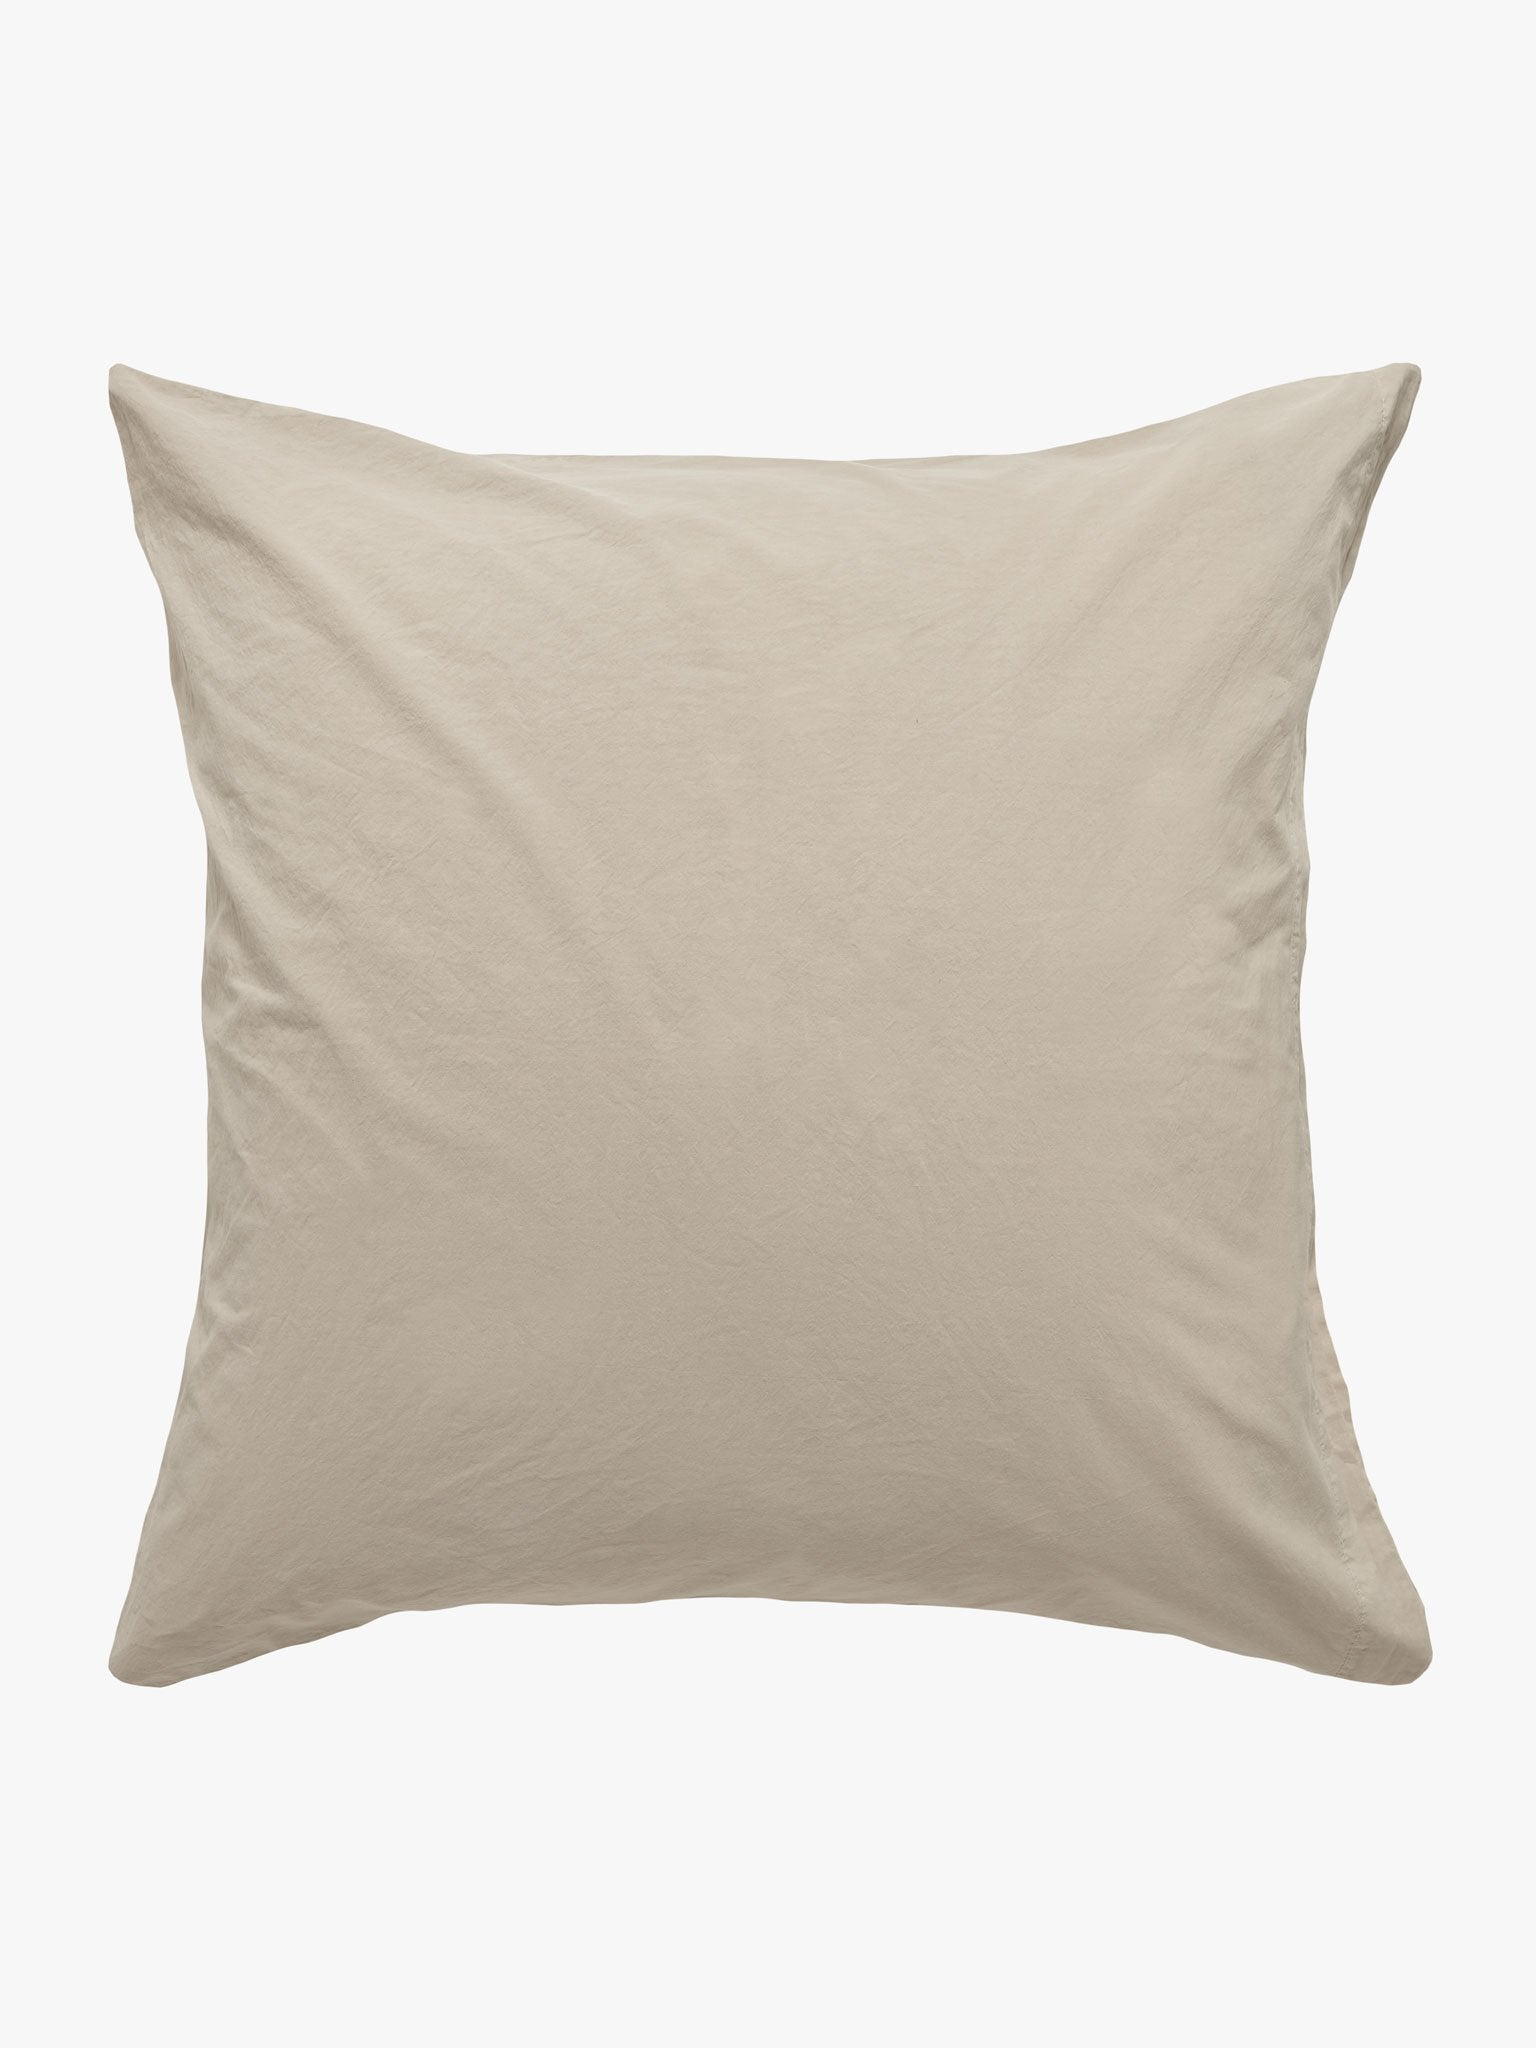 Nordic Flax Pillowcase Pillowcase AW18 European